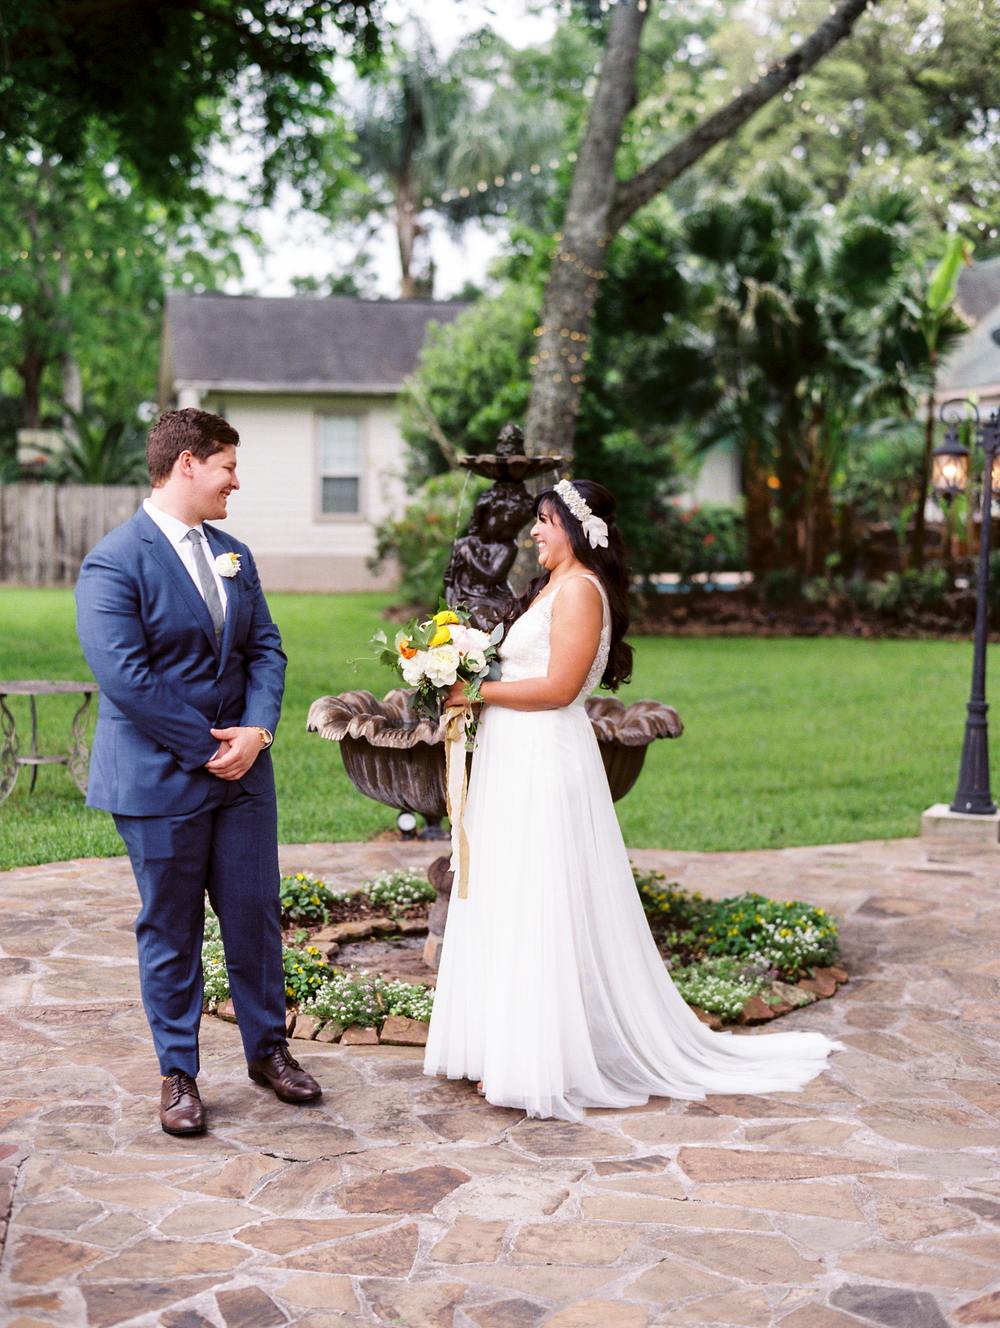 Dana Fernandez Photography Houston Texas Destination Photographer Film Ruffled Blog Wedding Bridal First Look Featured Photography -34.jpg